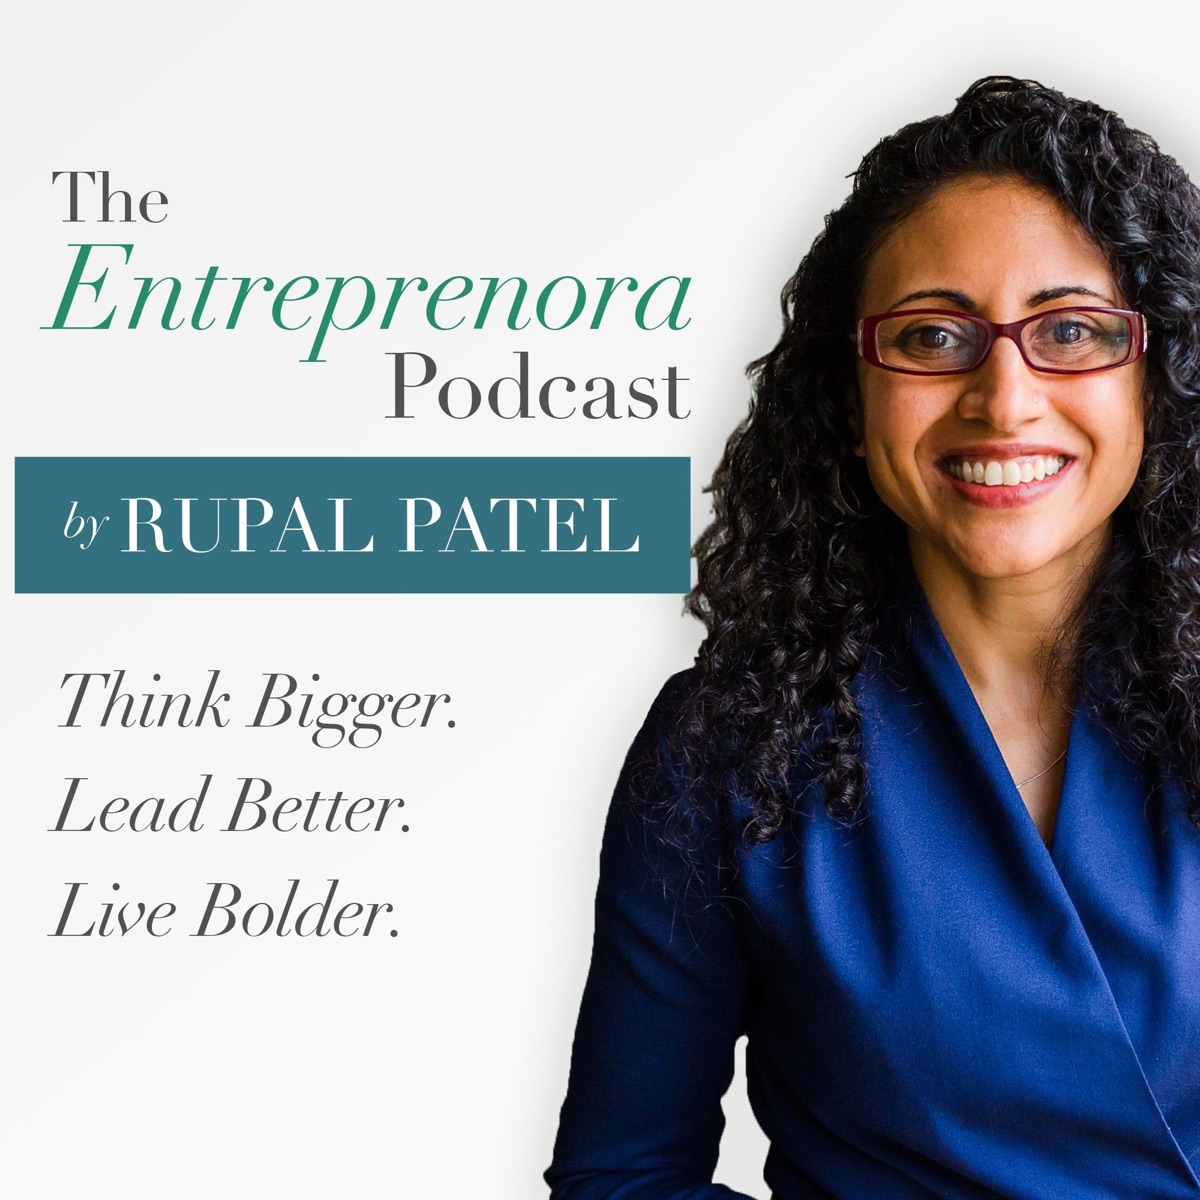 The Entreprenora Podcast